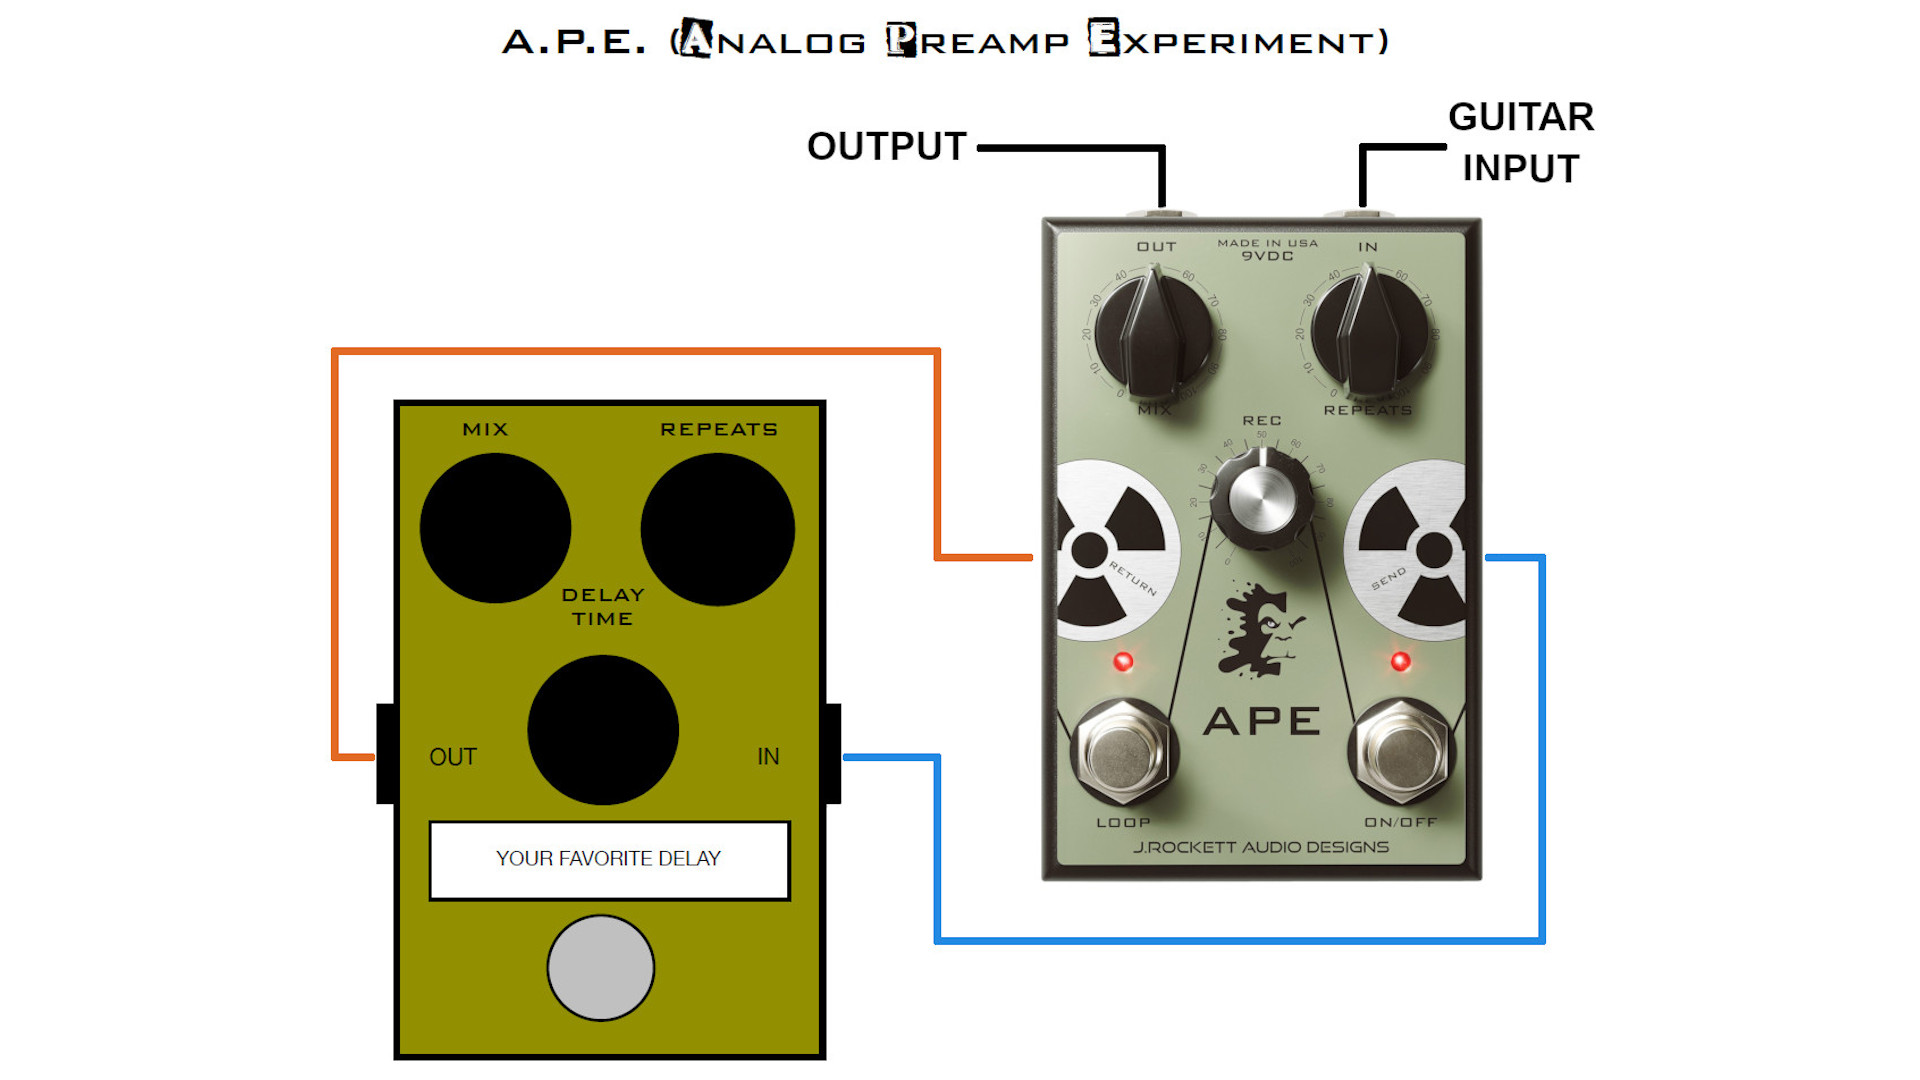 J.Rockett Audio Designs Analog Preamp Experiment (A.P.E.)